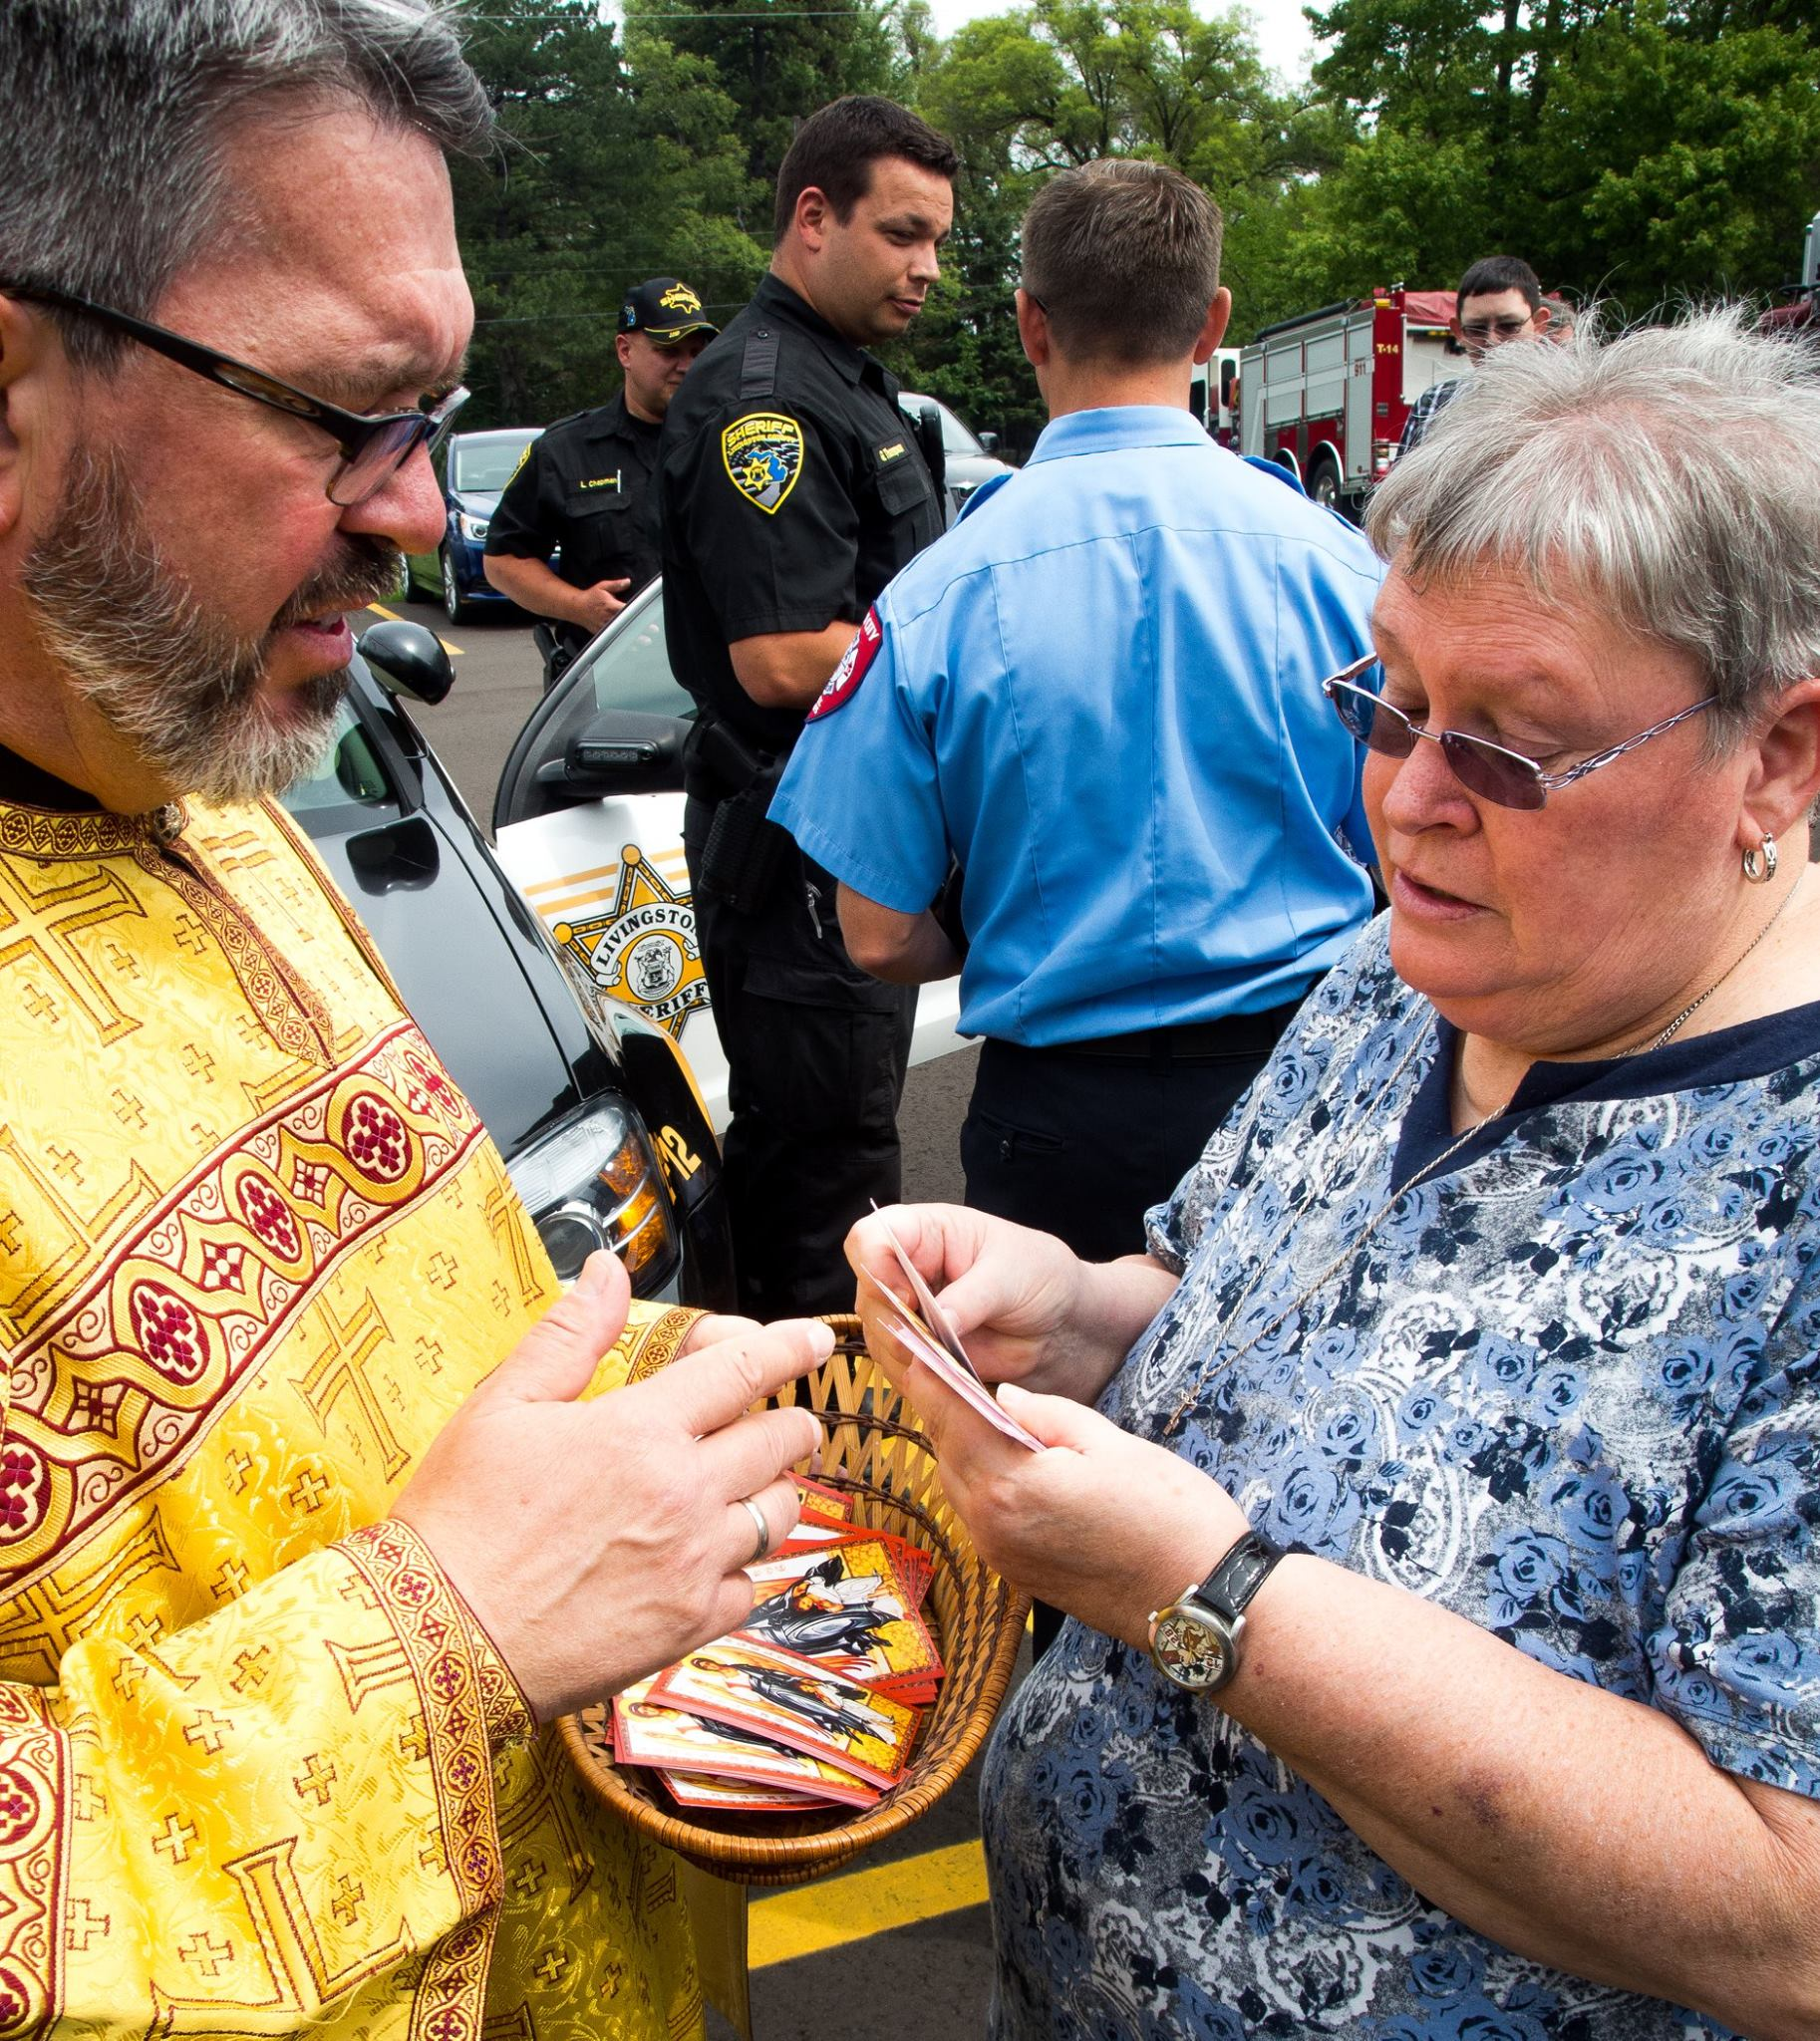 Prayer Cards for Cars Handed Out.jpg